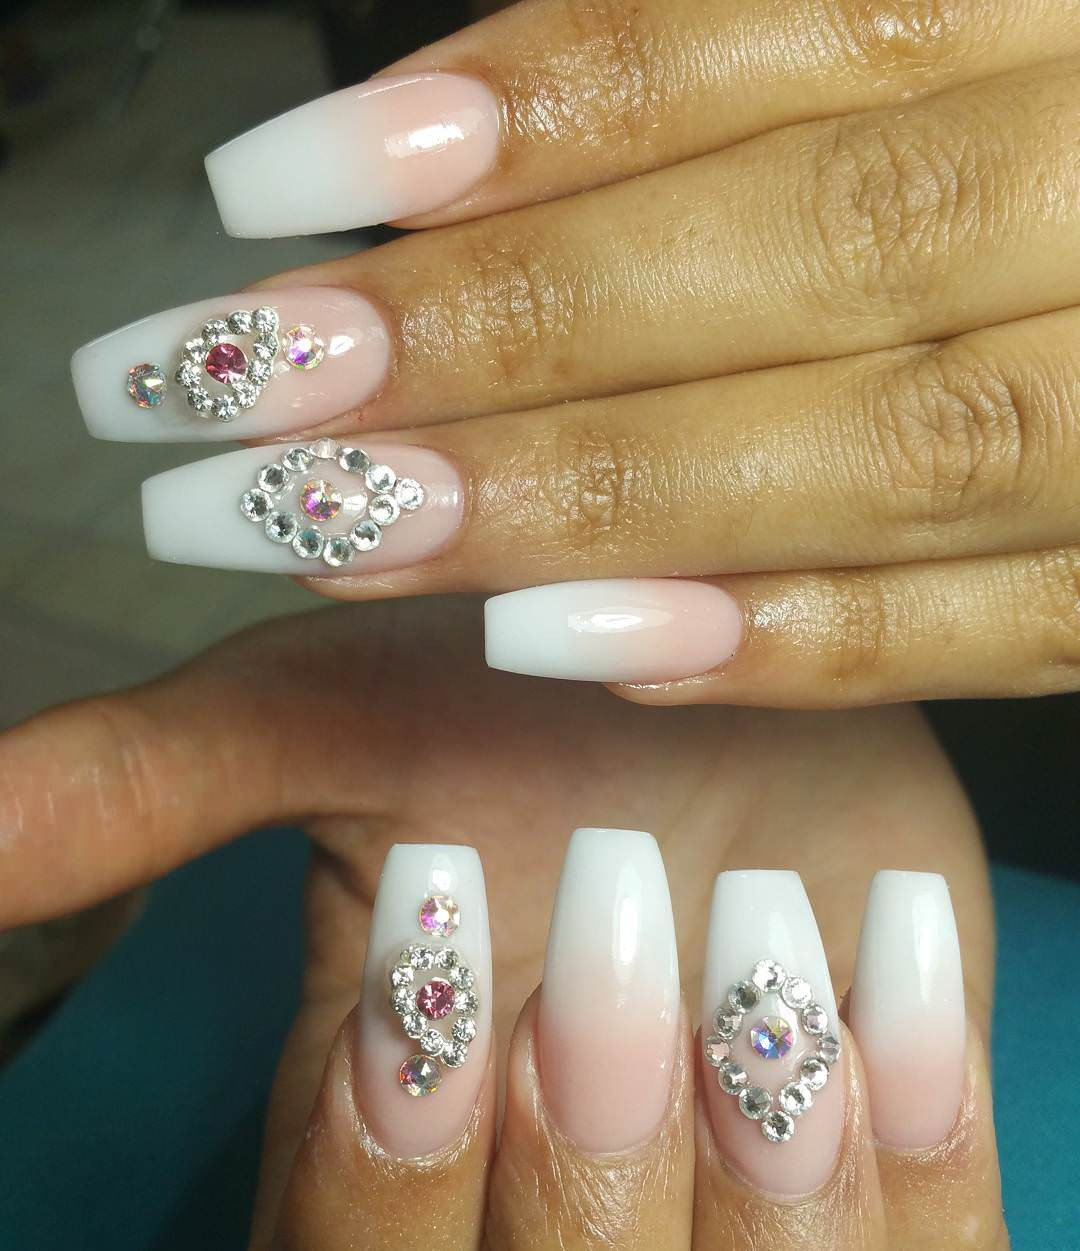 Nail Art Ideas Nail Art Albany Road Pictures Of Nail Art Design